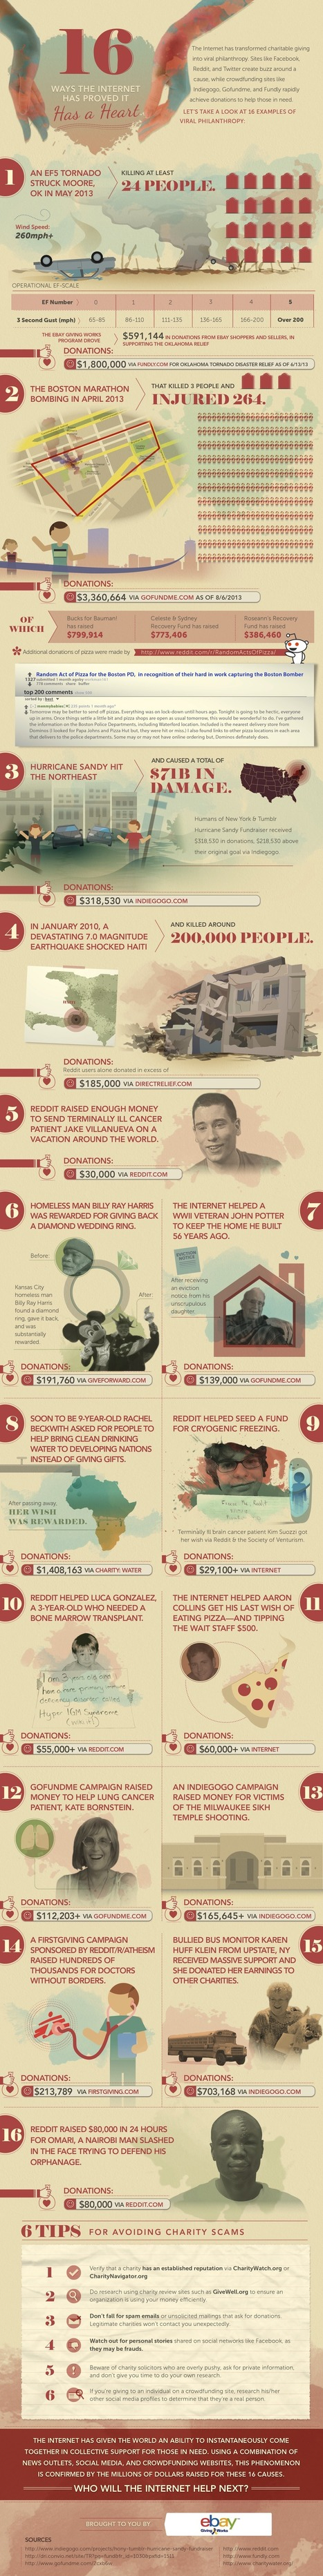 16 Ways the Internet Supercharged Viral Philanthropy [INFOGRAPHIC] | Crowdfunding World | Scoop.it